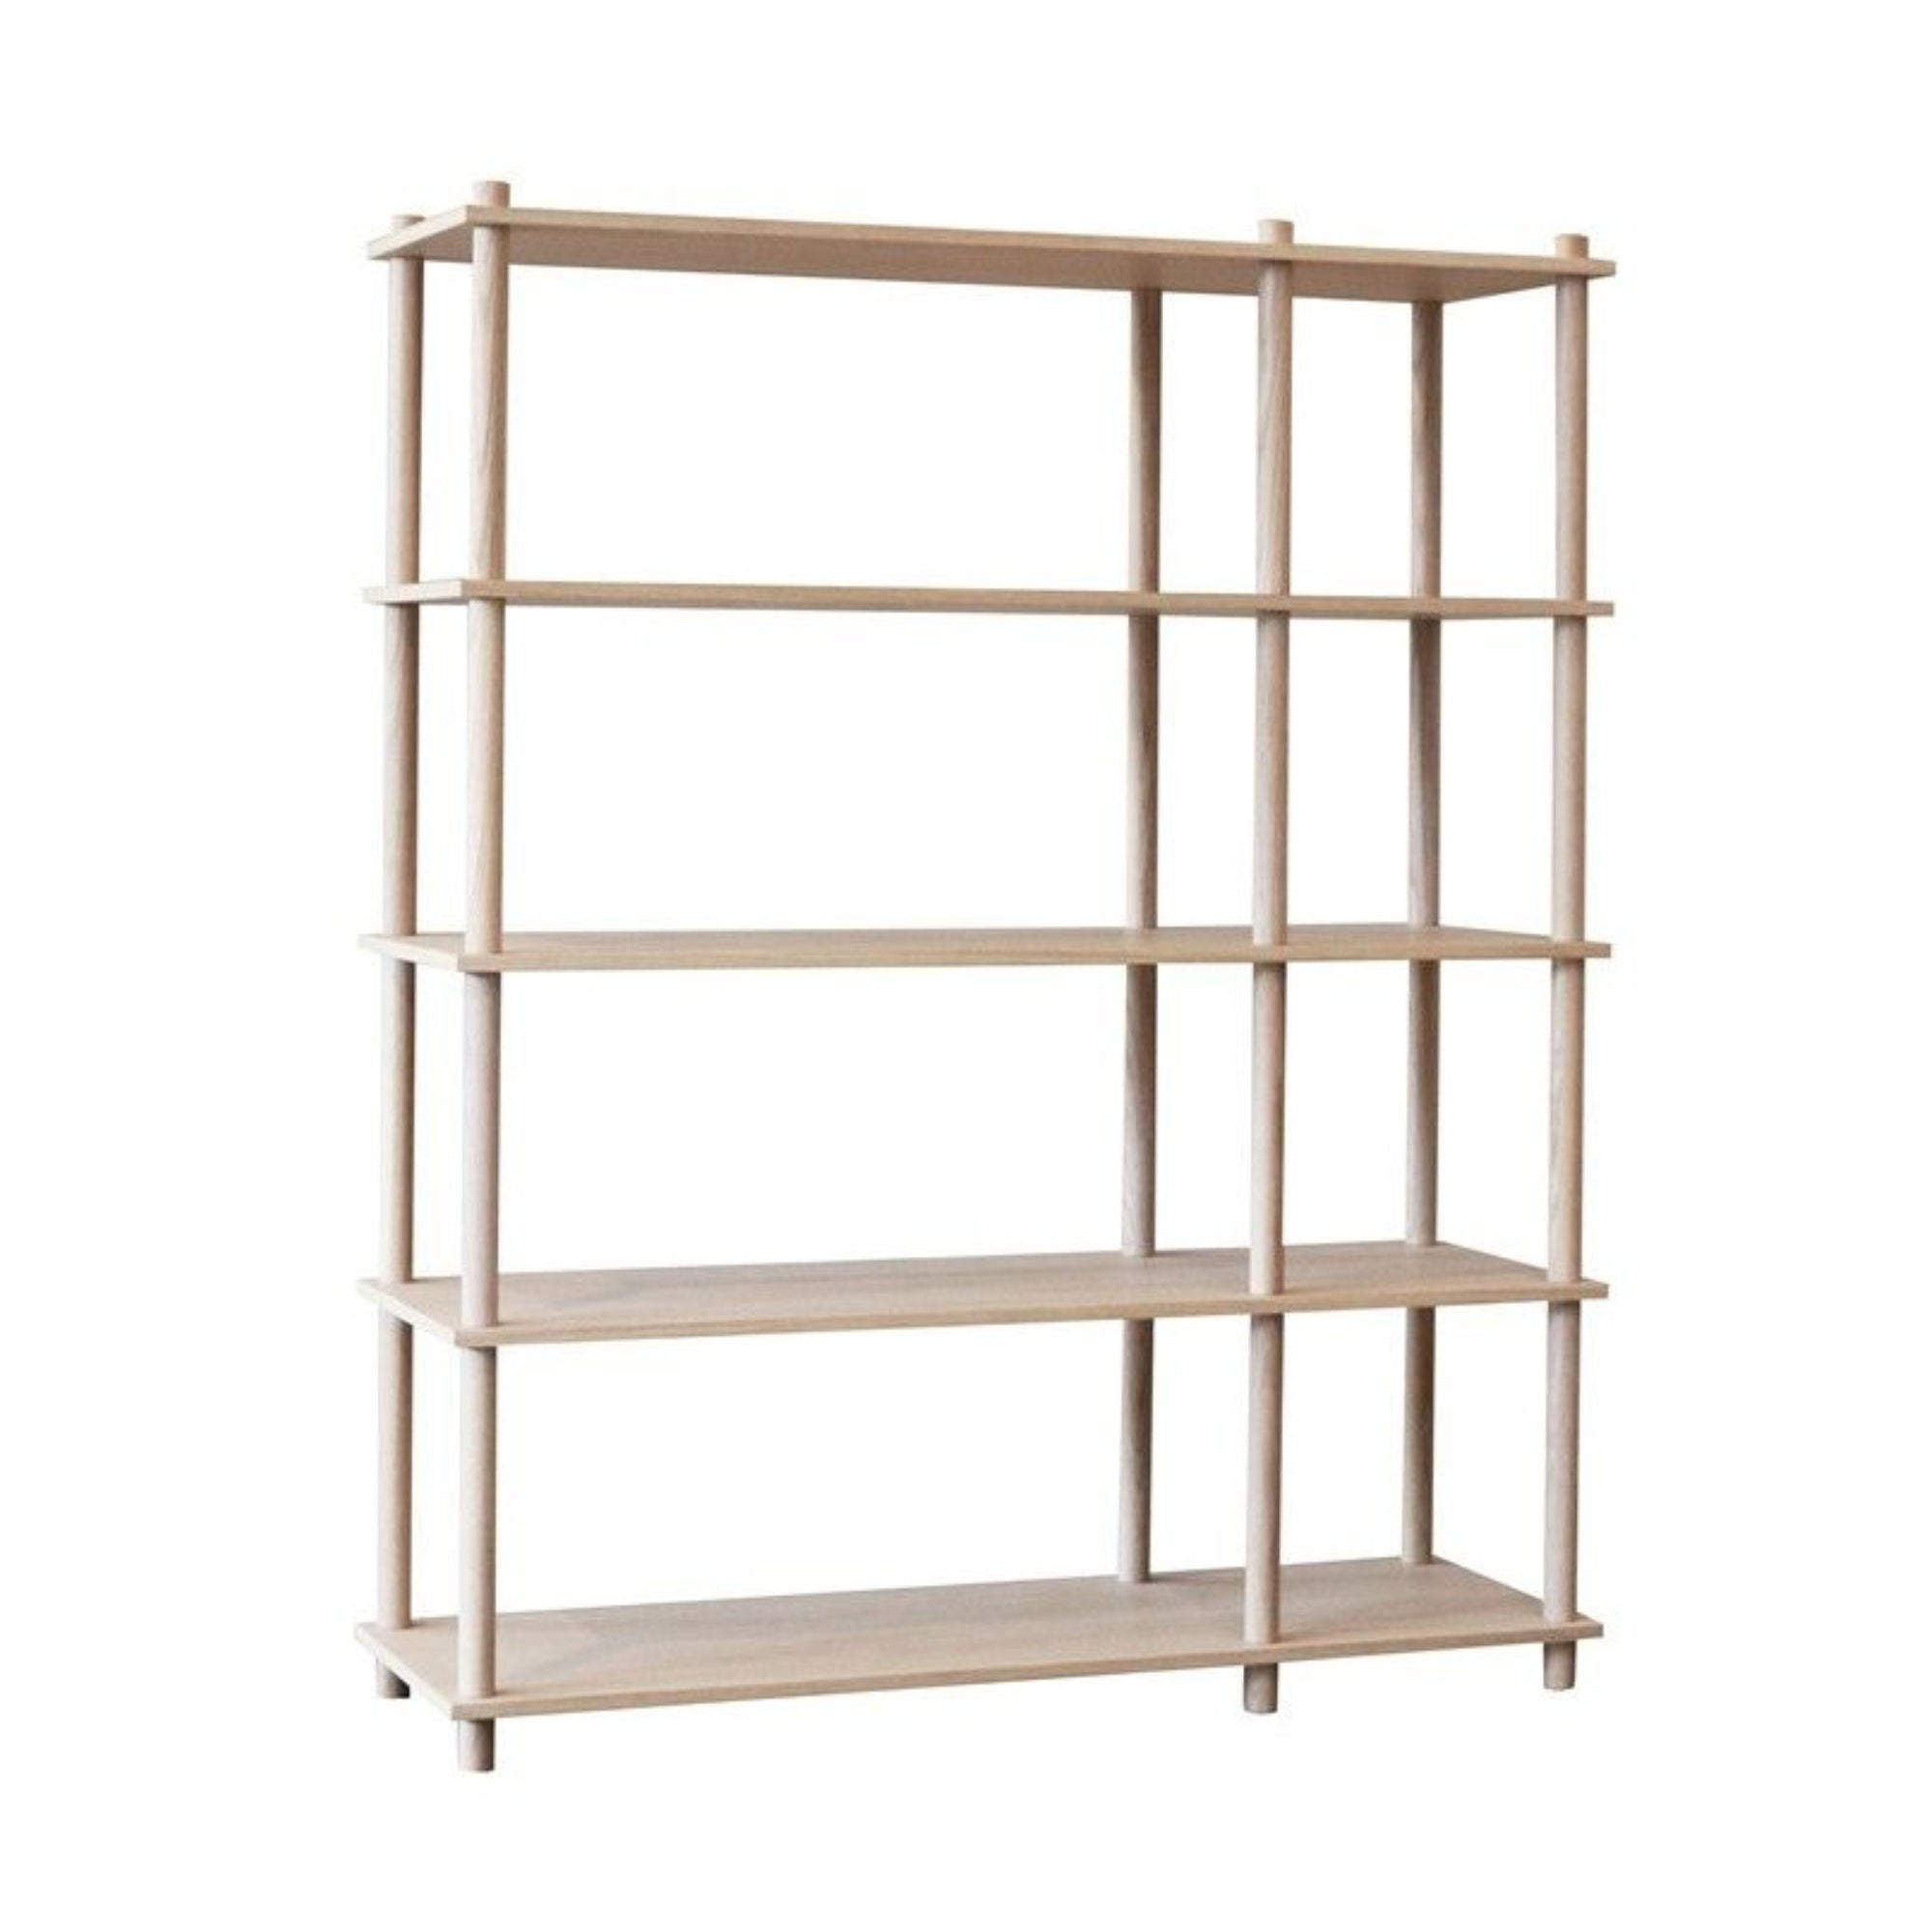 Woud Elevate Shelving System 9 , Oak